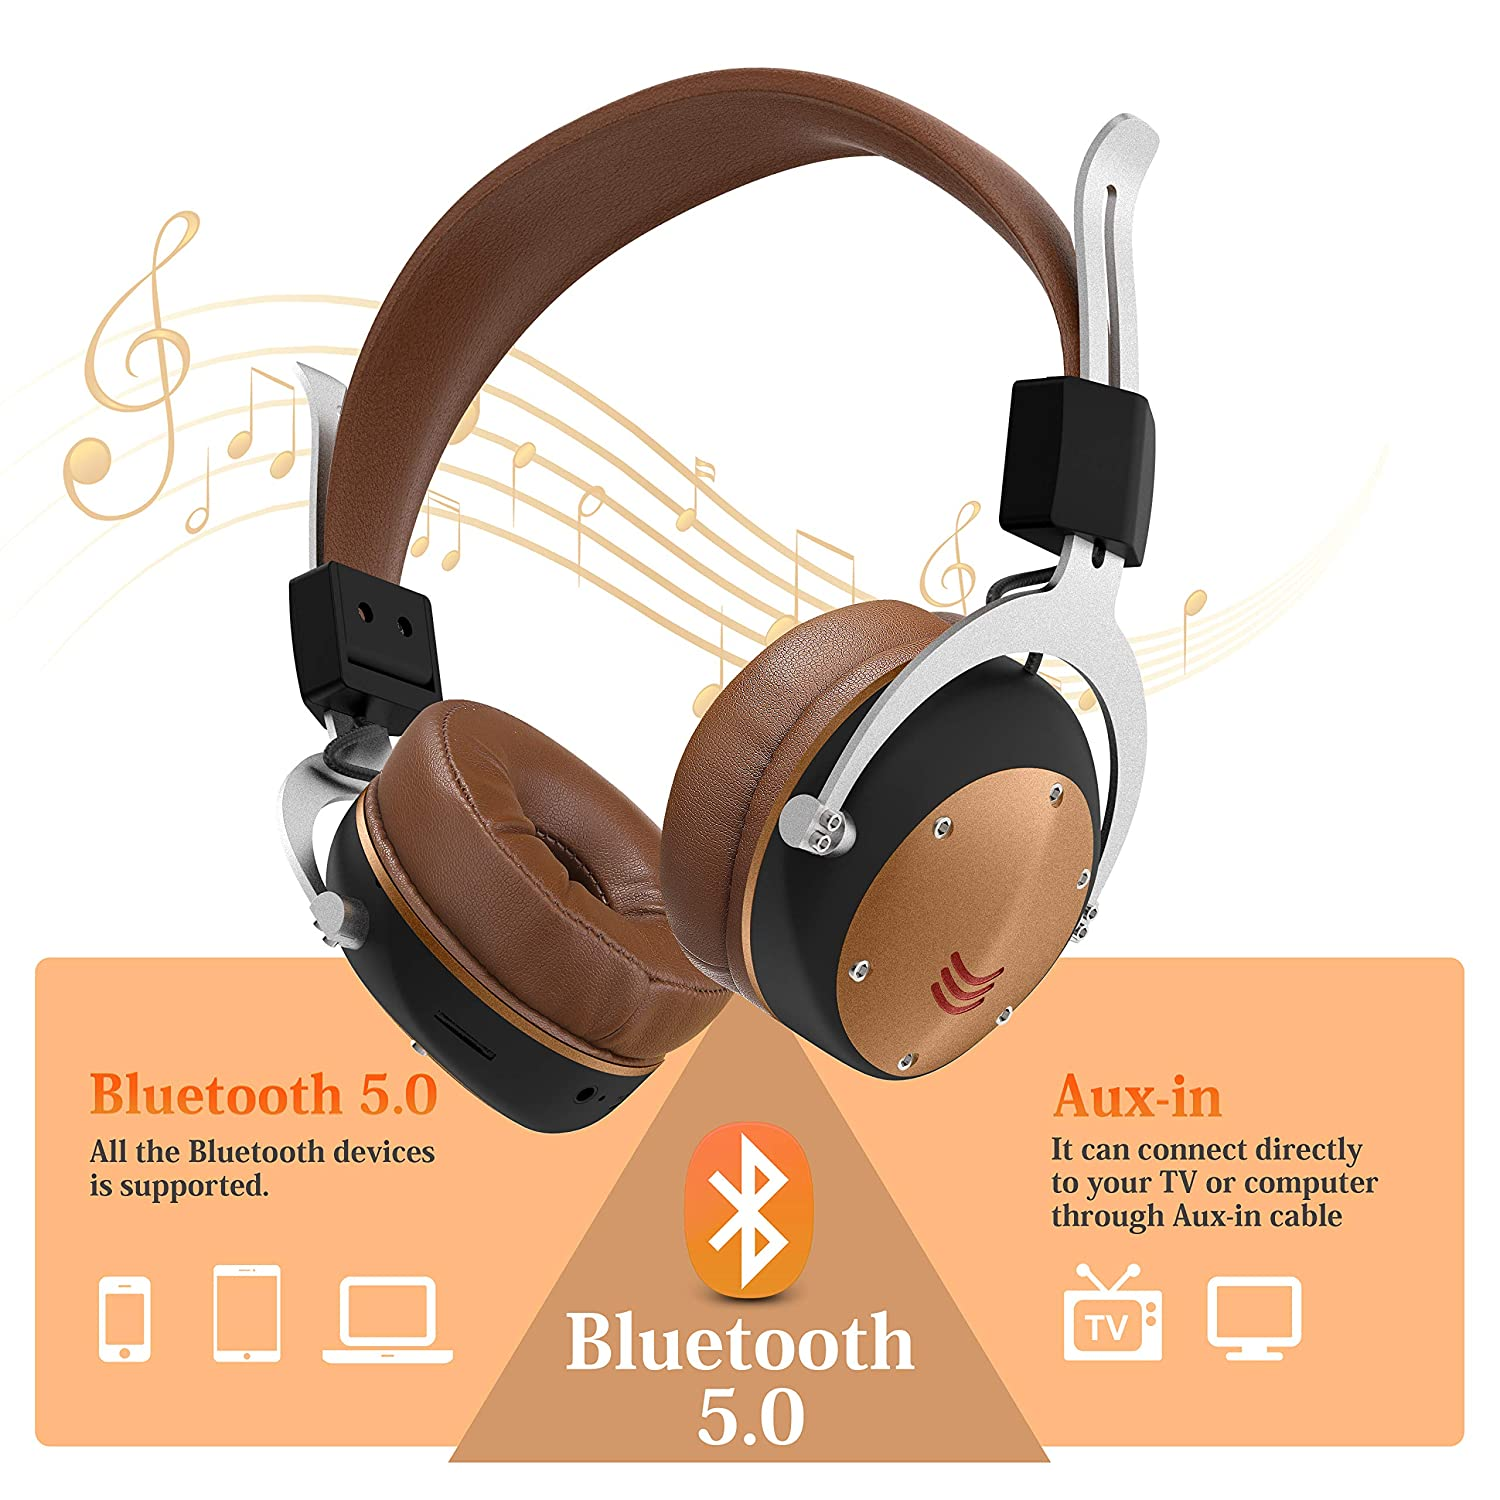 Wireless Over Ear Headphones Bluetooth Headphones Over Ear with Soft Memory Protein Ear Muffs HD Sound Quality Long Autonomy Comfortable Design w Built-in Mic Wired Mode PC Cell Phones TV